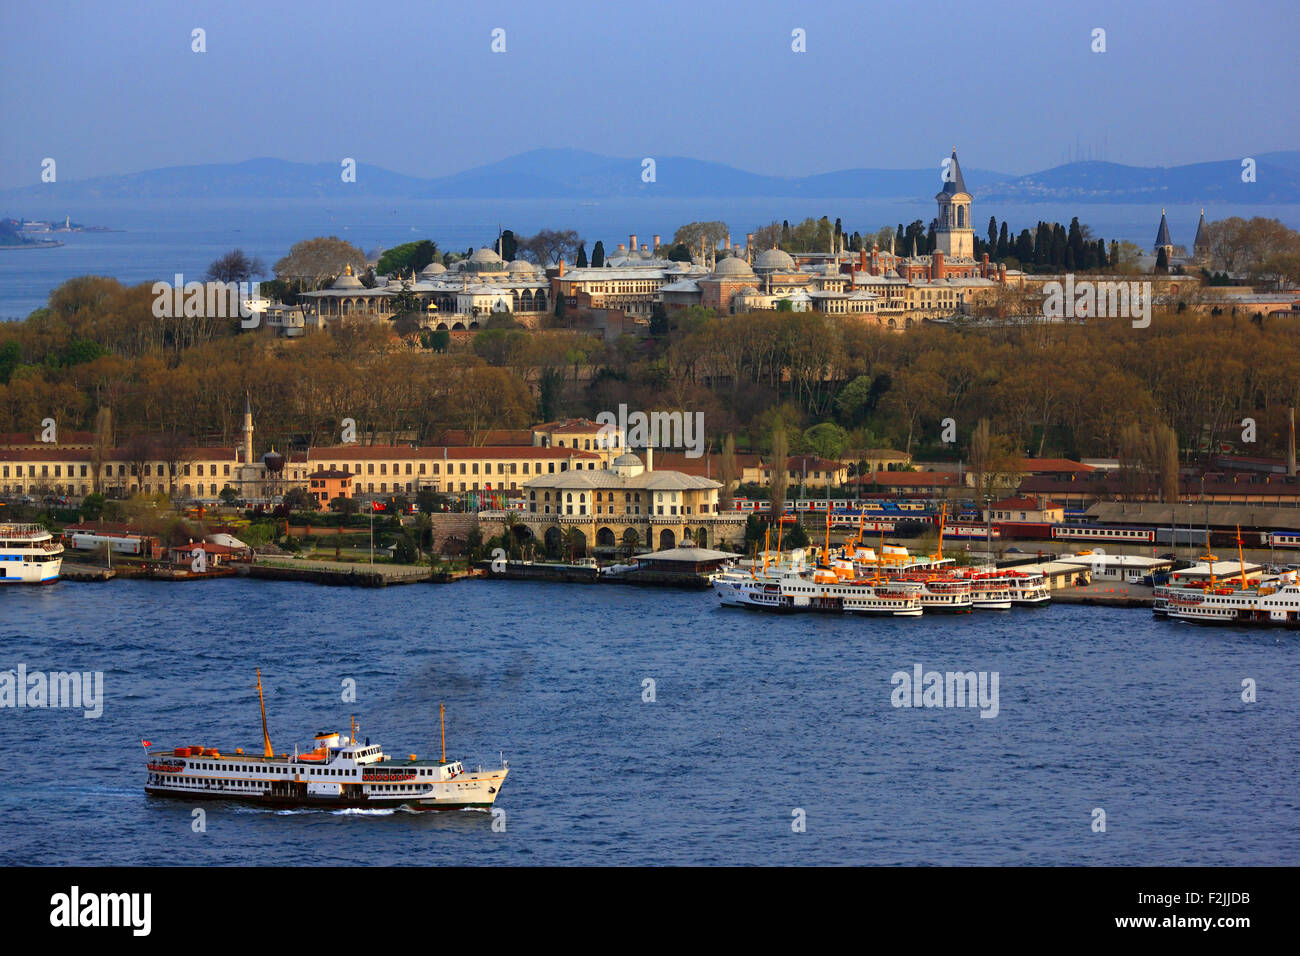 View of Topkapi palace from the Tower of Galata. You can also see the Sirkeci train station. Istanbul, Turkey - Stock Image